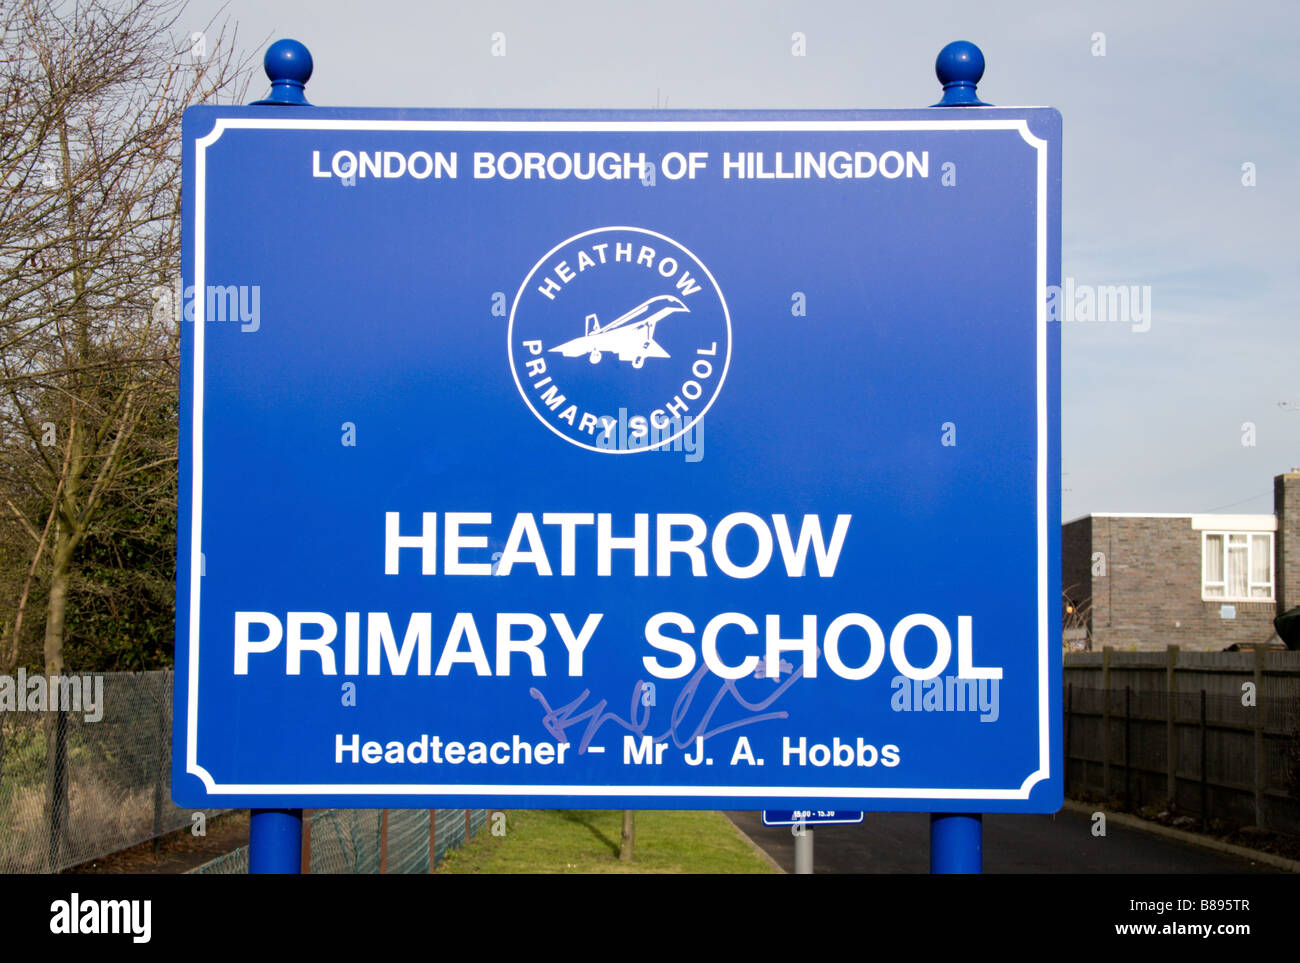 The Heathrow Primary School, Sipson, which will disappear if Heathrow's proposed third runway goes ahead. - Stock Image